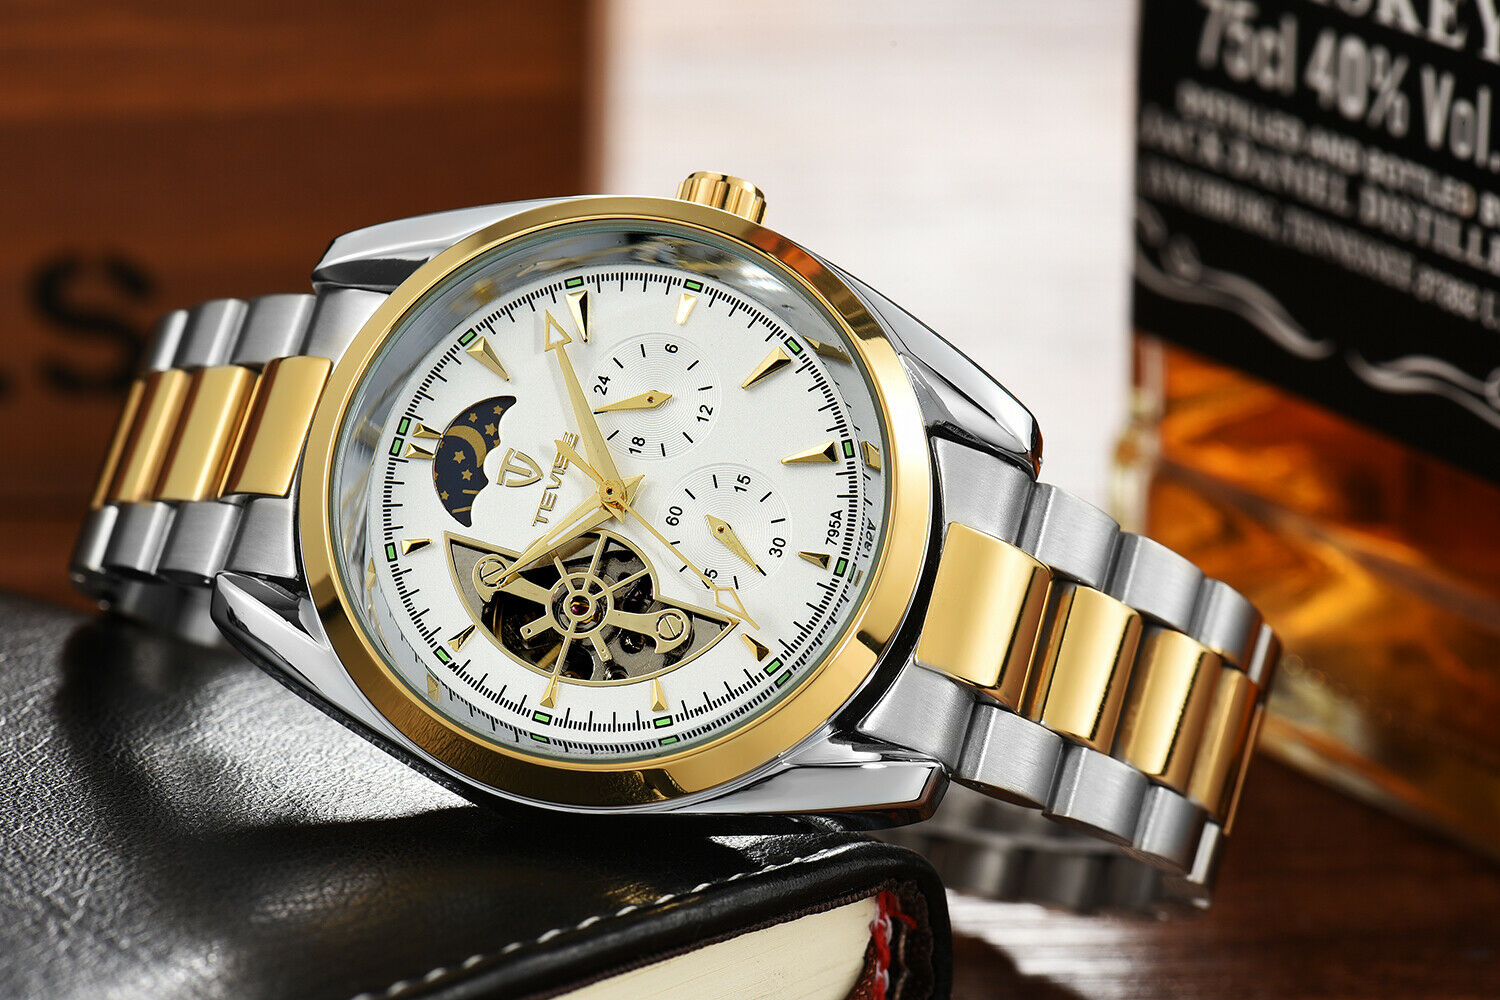 TEVISE Automatic Mechanical Watch Tourbillon Sun Moon Phase 42mm Gold Men Luxury